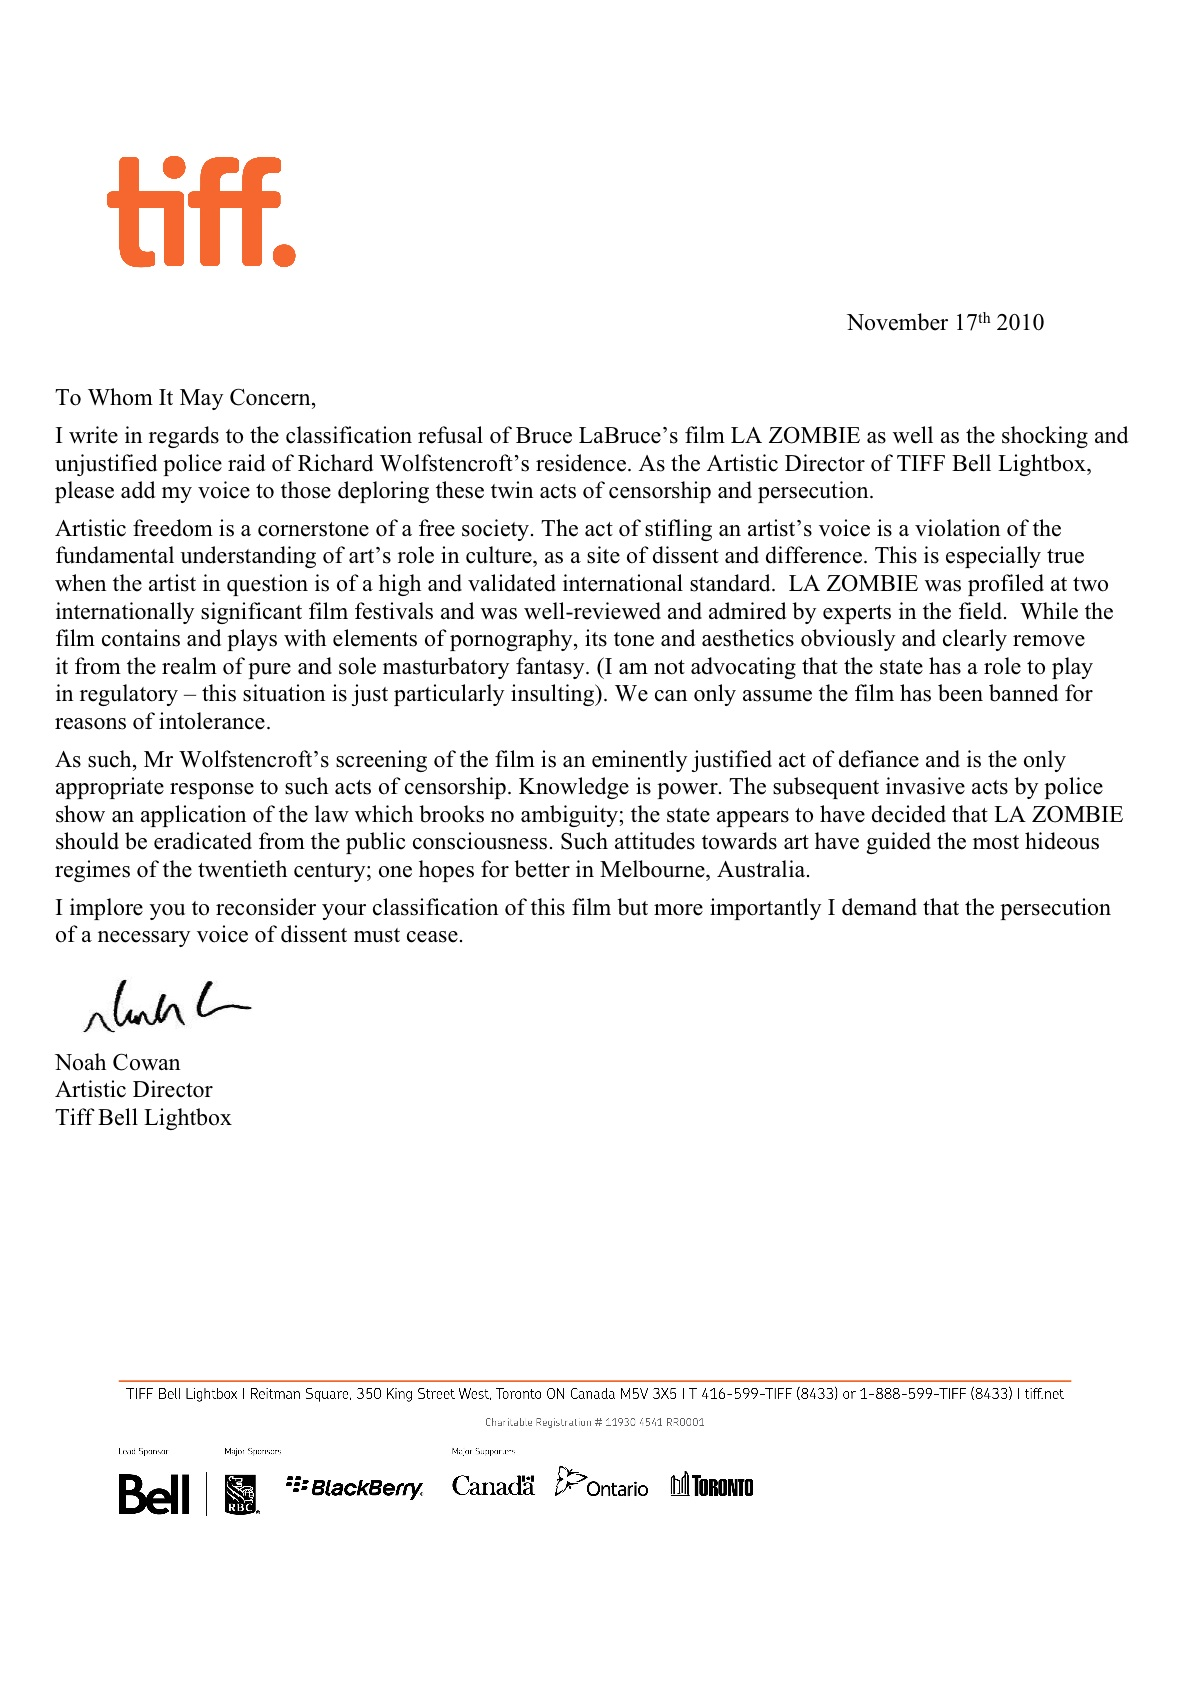 Letter of Support from Toronto International Film Festival